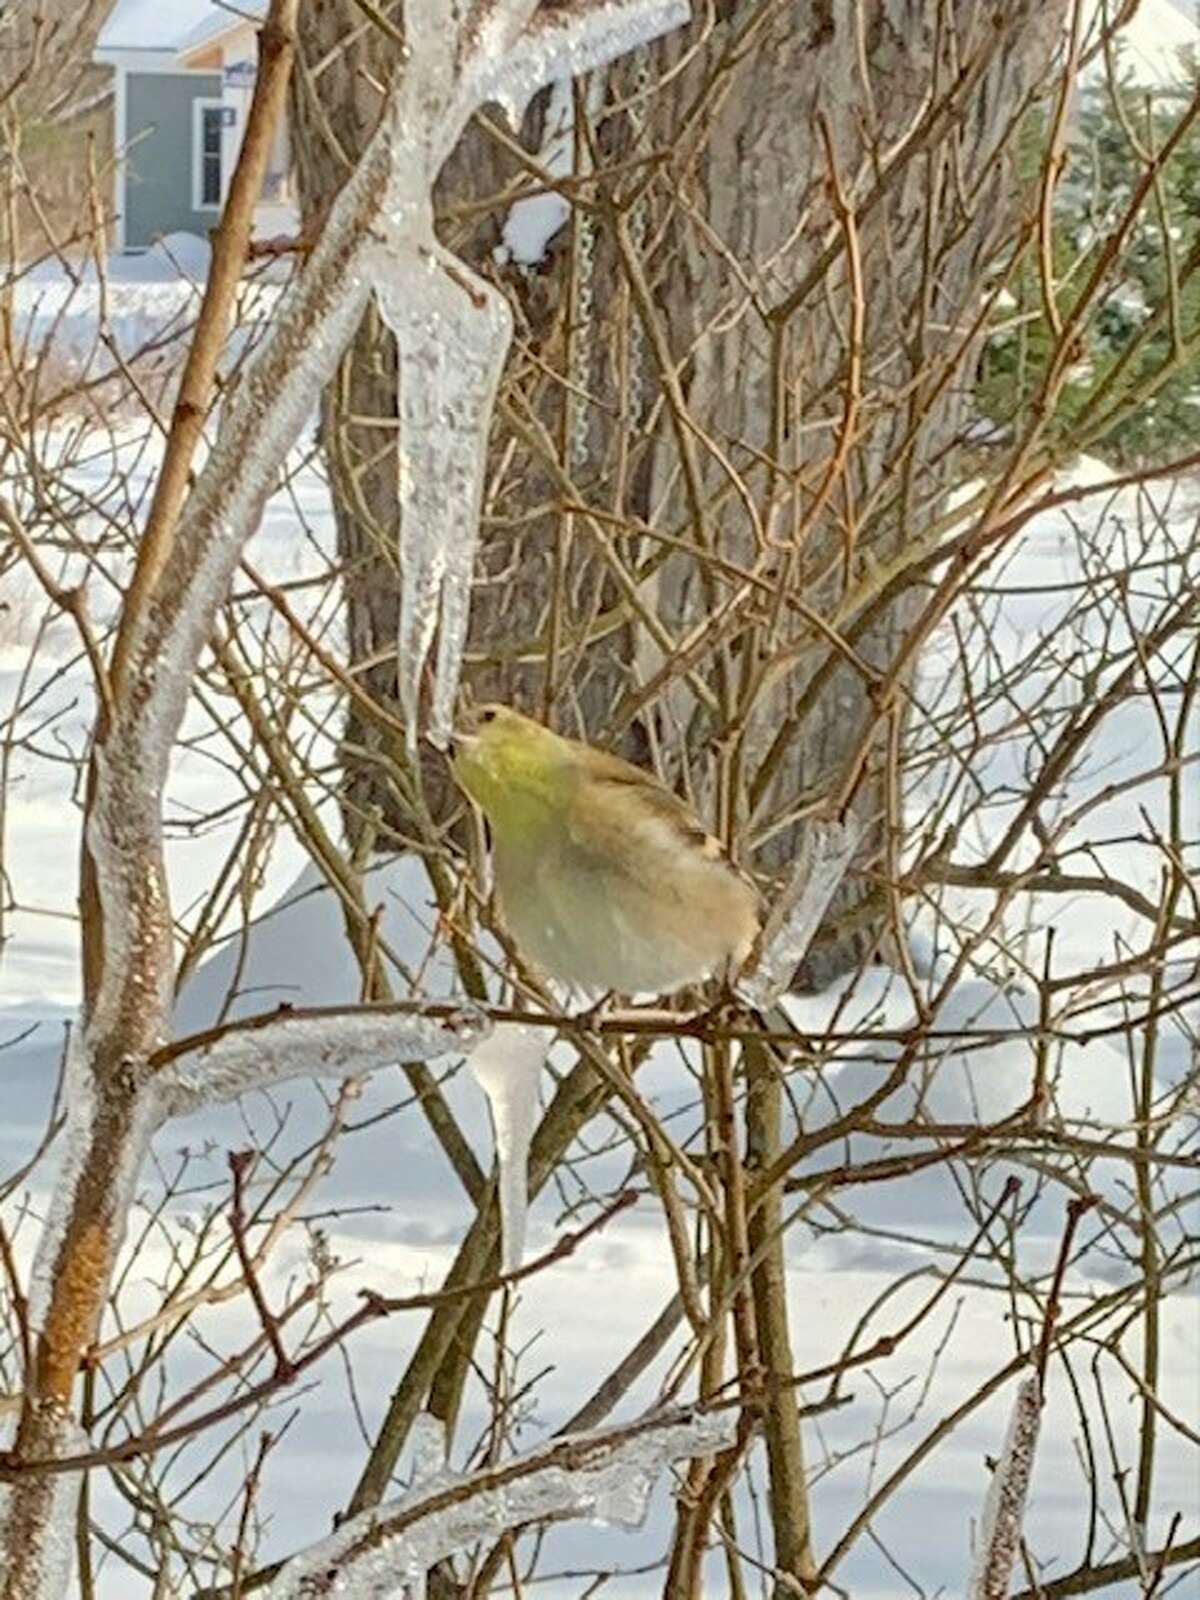 Valerie Donovan of Delmar found a goldfinch drinking from an icicle.